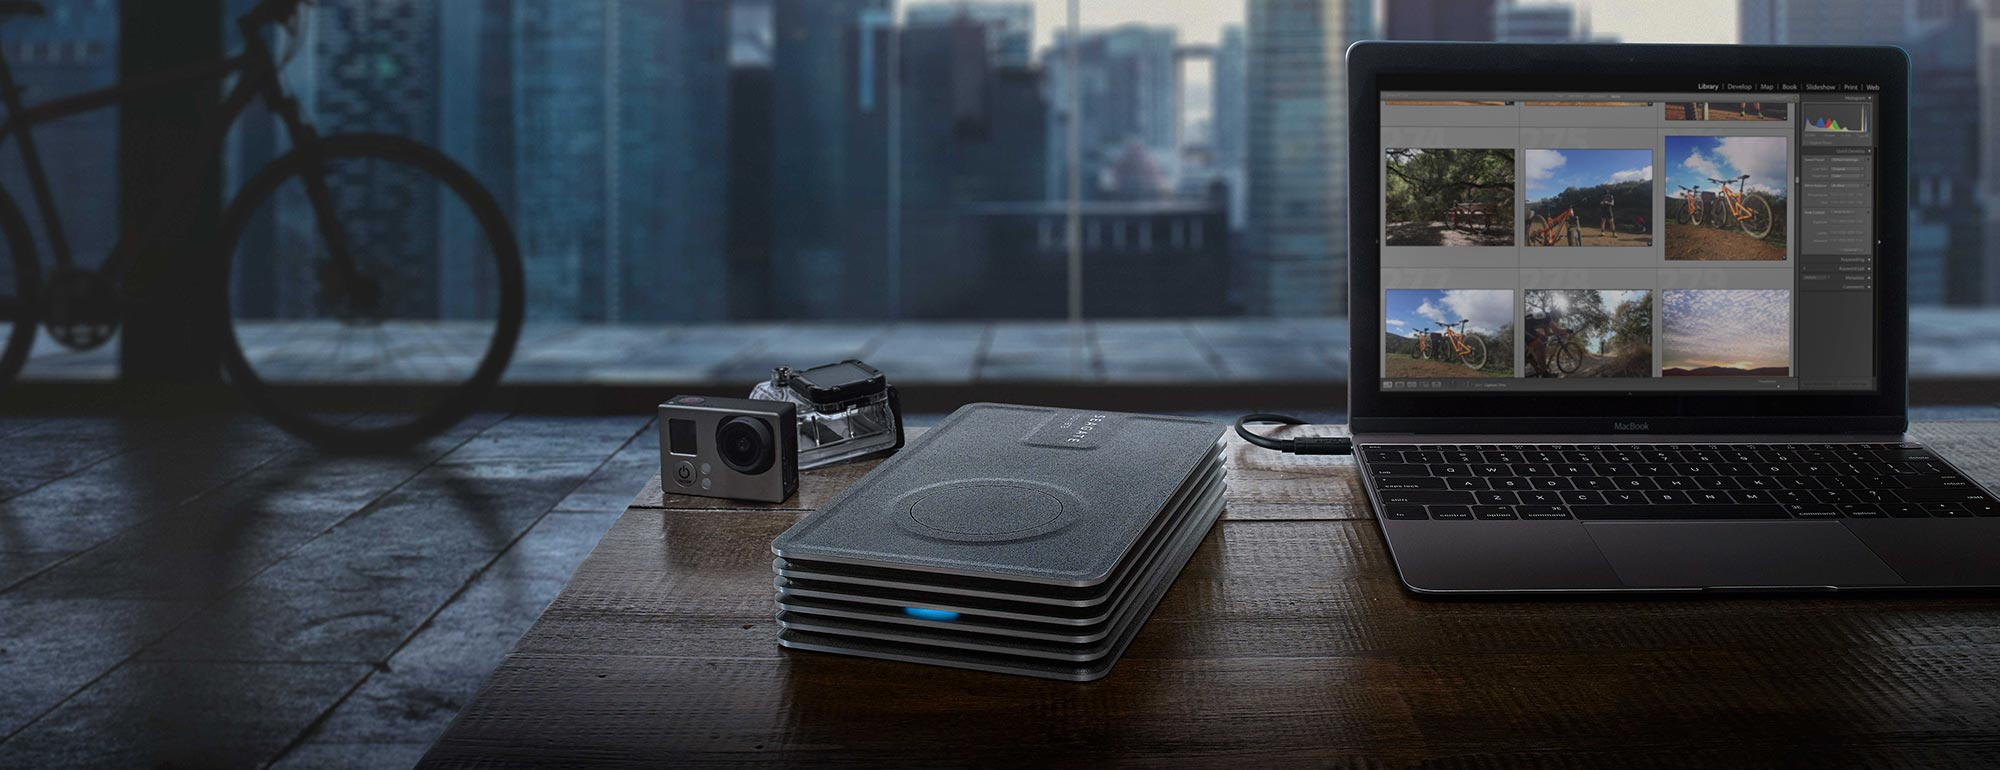 USB_Desktop_External_Drive